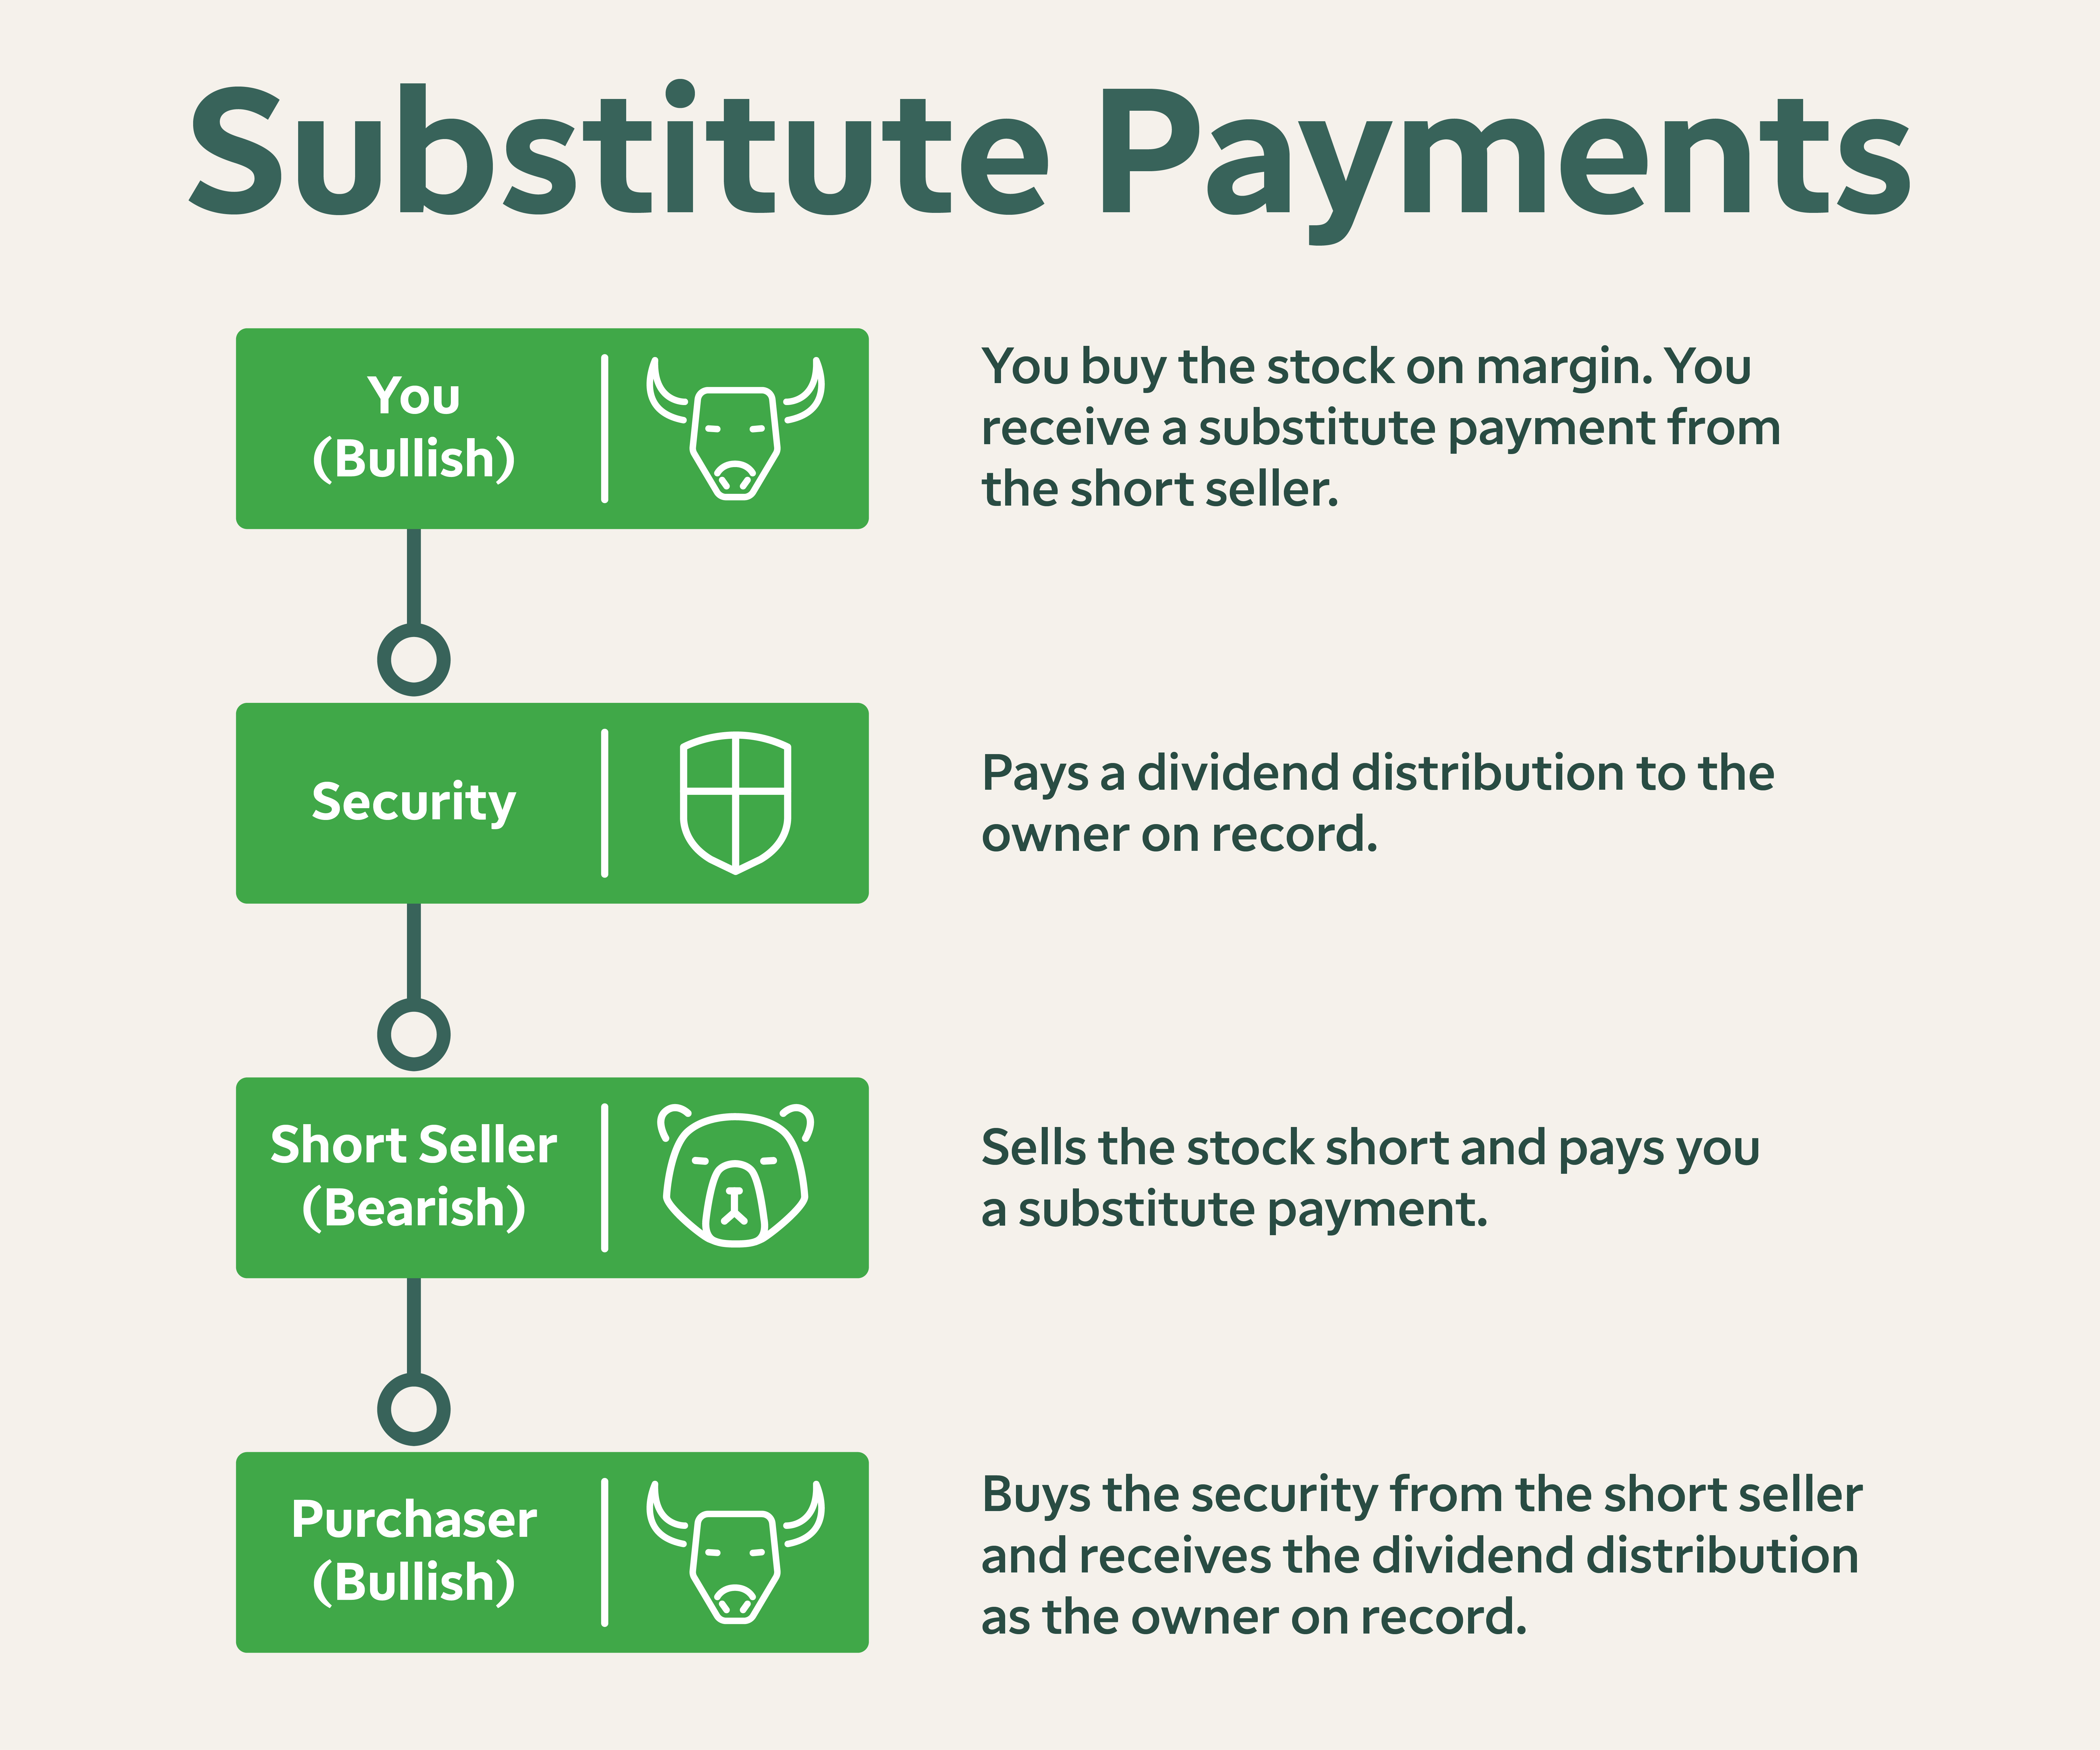 substitute payments, explained